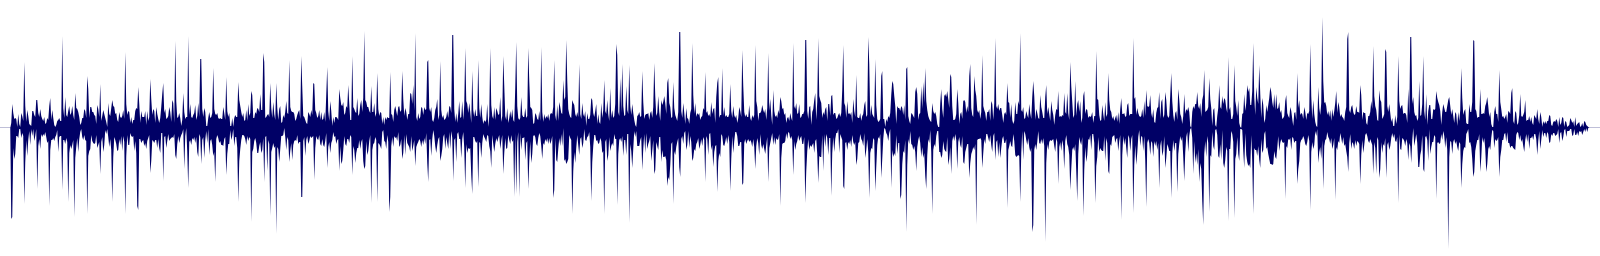 waveform of track #91020